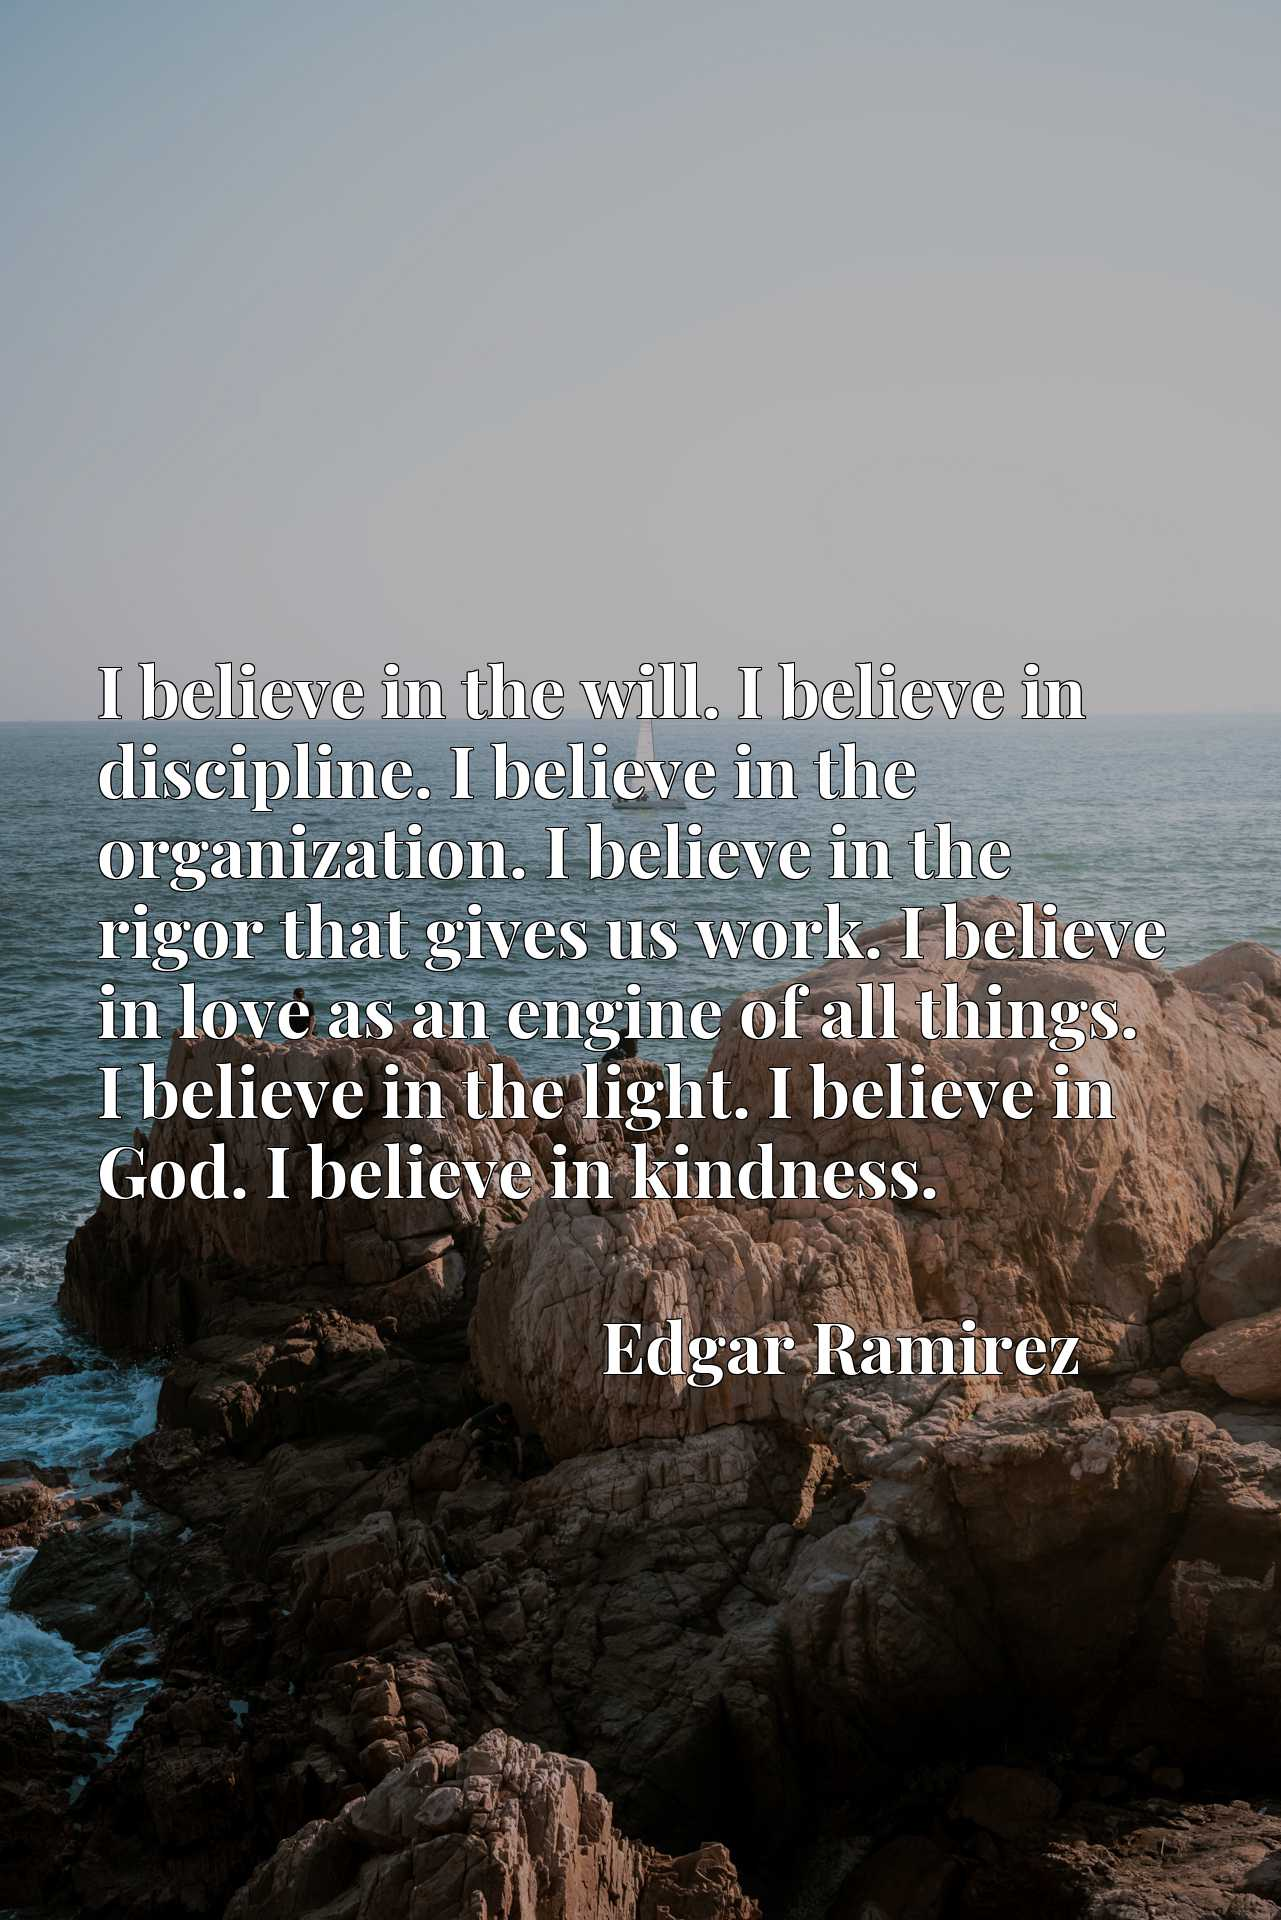 I believe in the will. I believe in discipline. I believe in the organization. I believe in the rigor that gives us work. I believe in love as an engine of all things. I believe in the light. I believe in God. I believe in kindness.